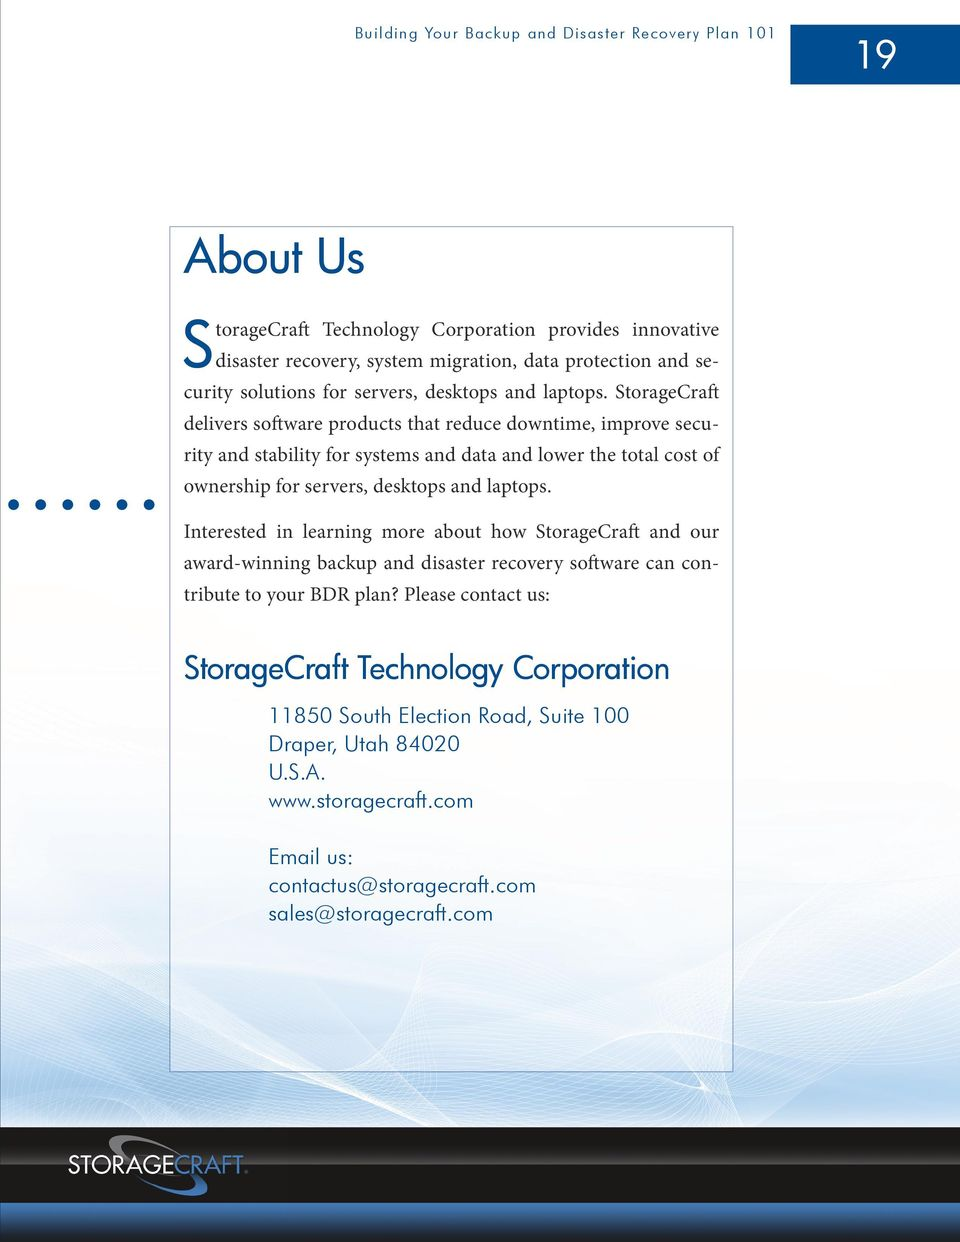 StorageCraft delivers software products that reduce downtime, improve security and stability for systems and data and lower the total cost of ownership for servers, desktops and laptops.